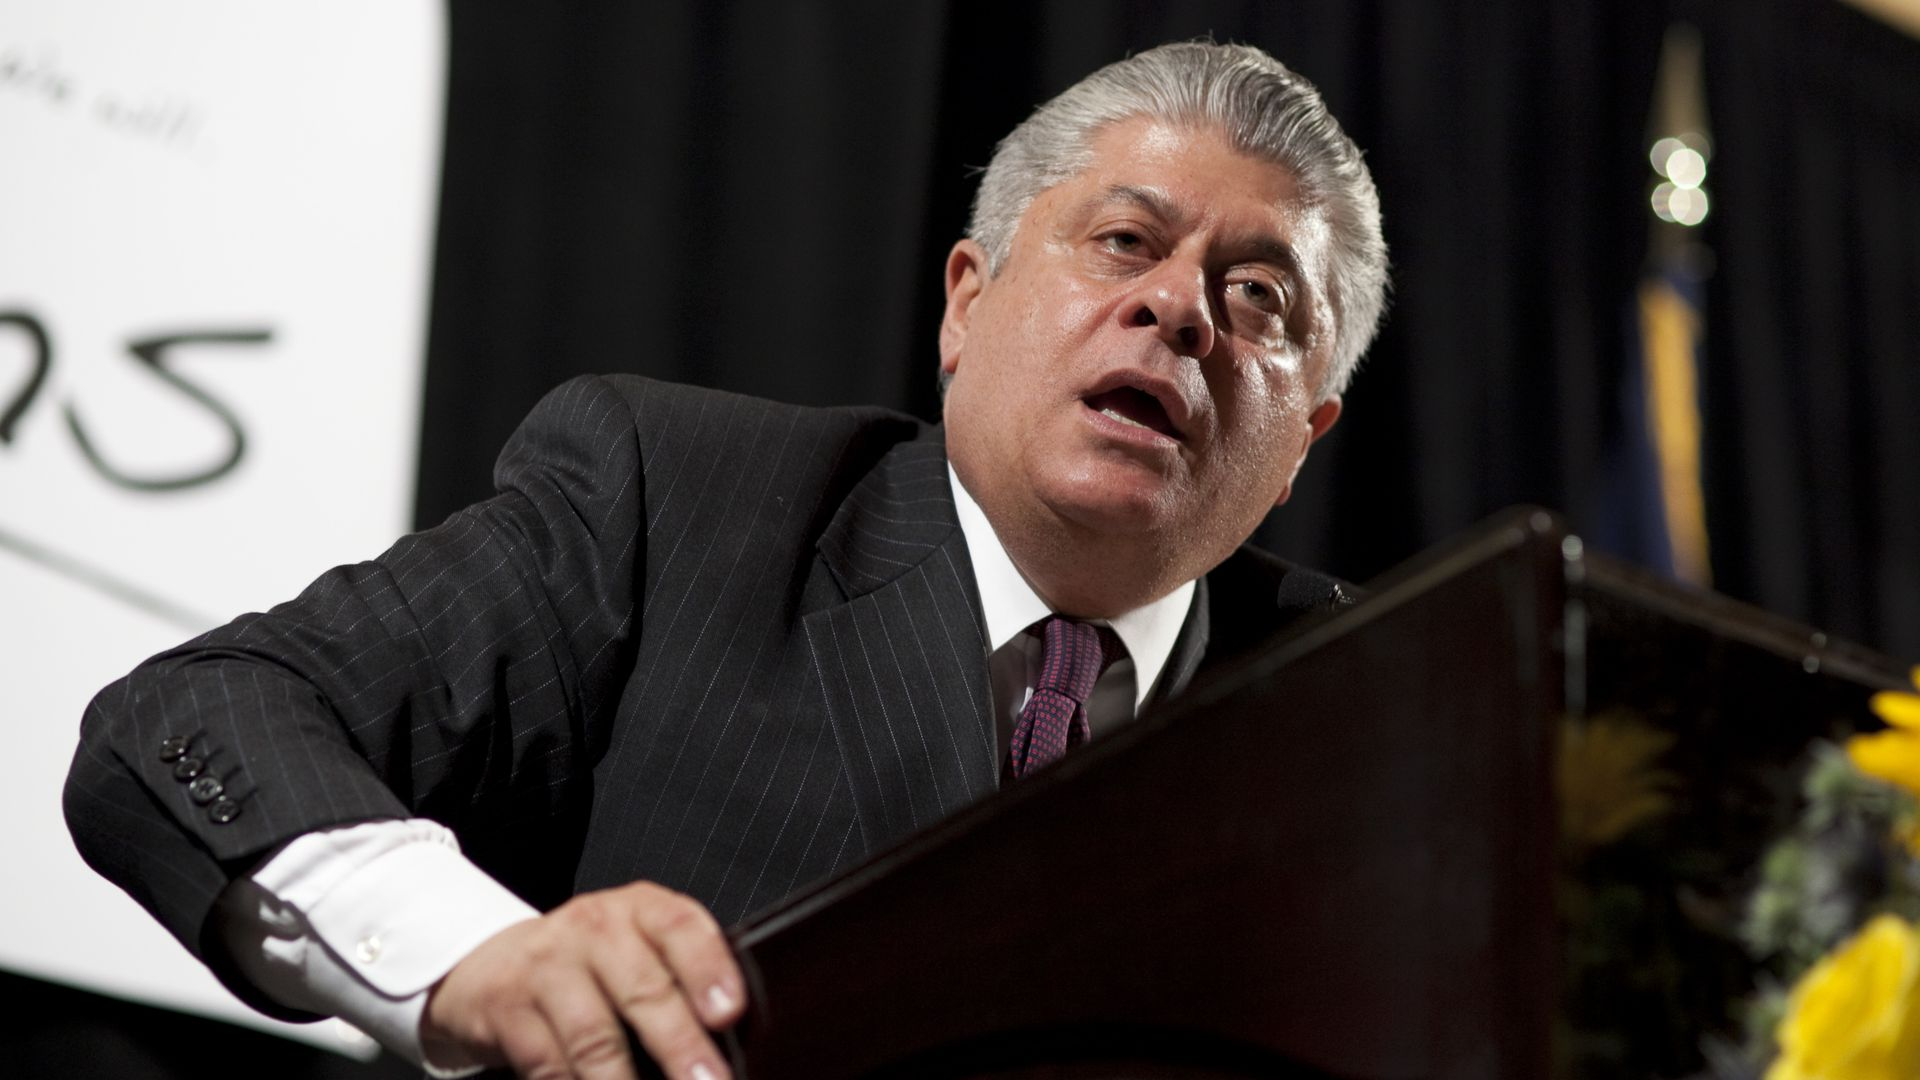 In this image, Andrew Napolitano leans over a podium and speaks at a crowd.